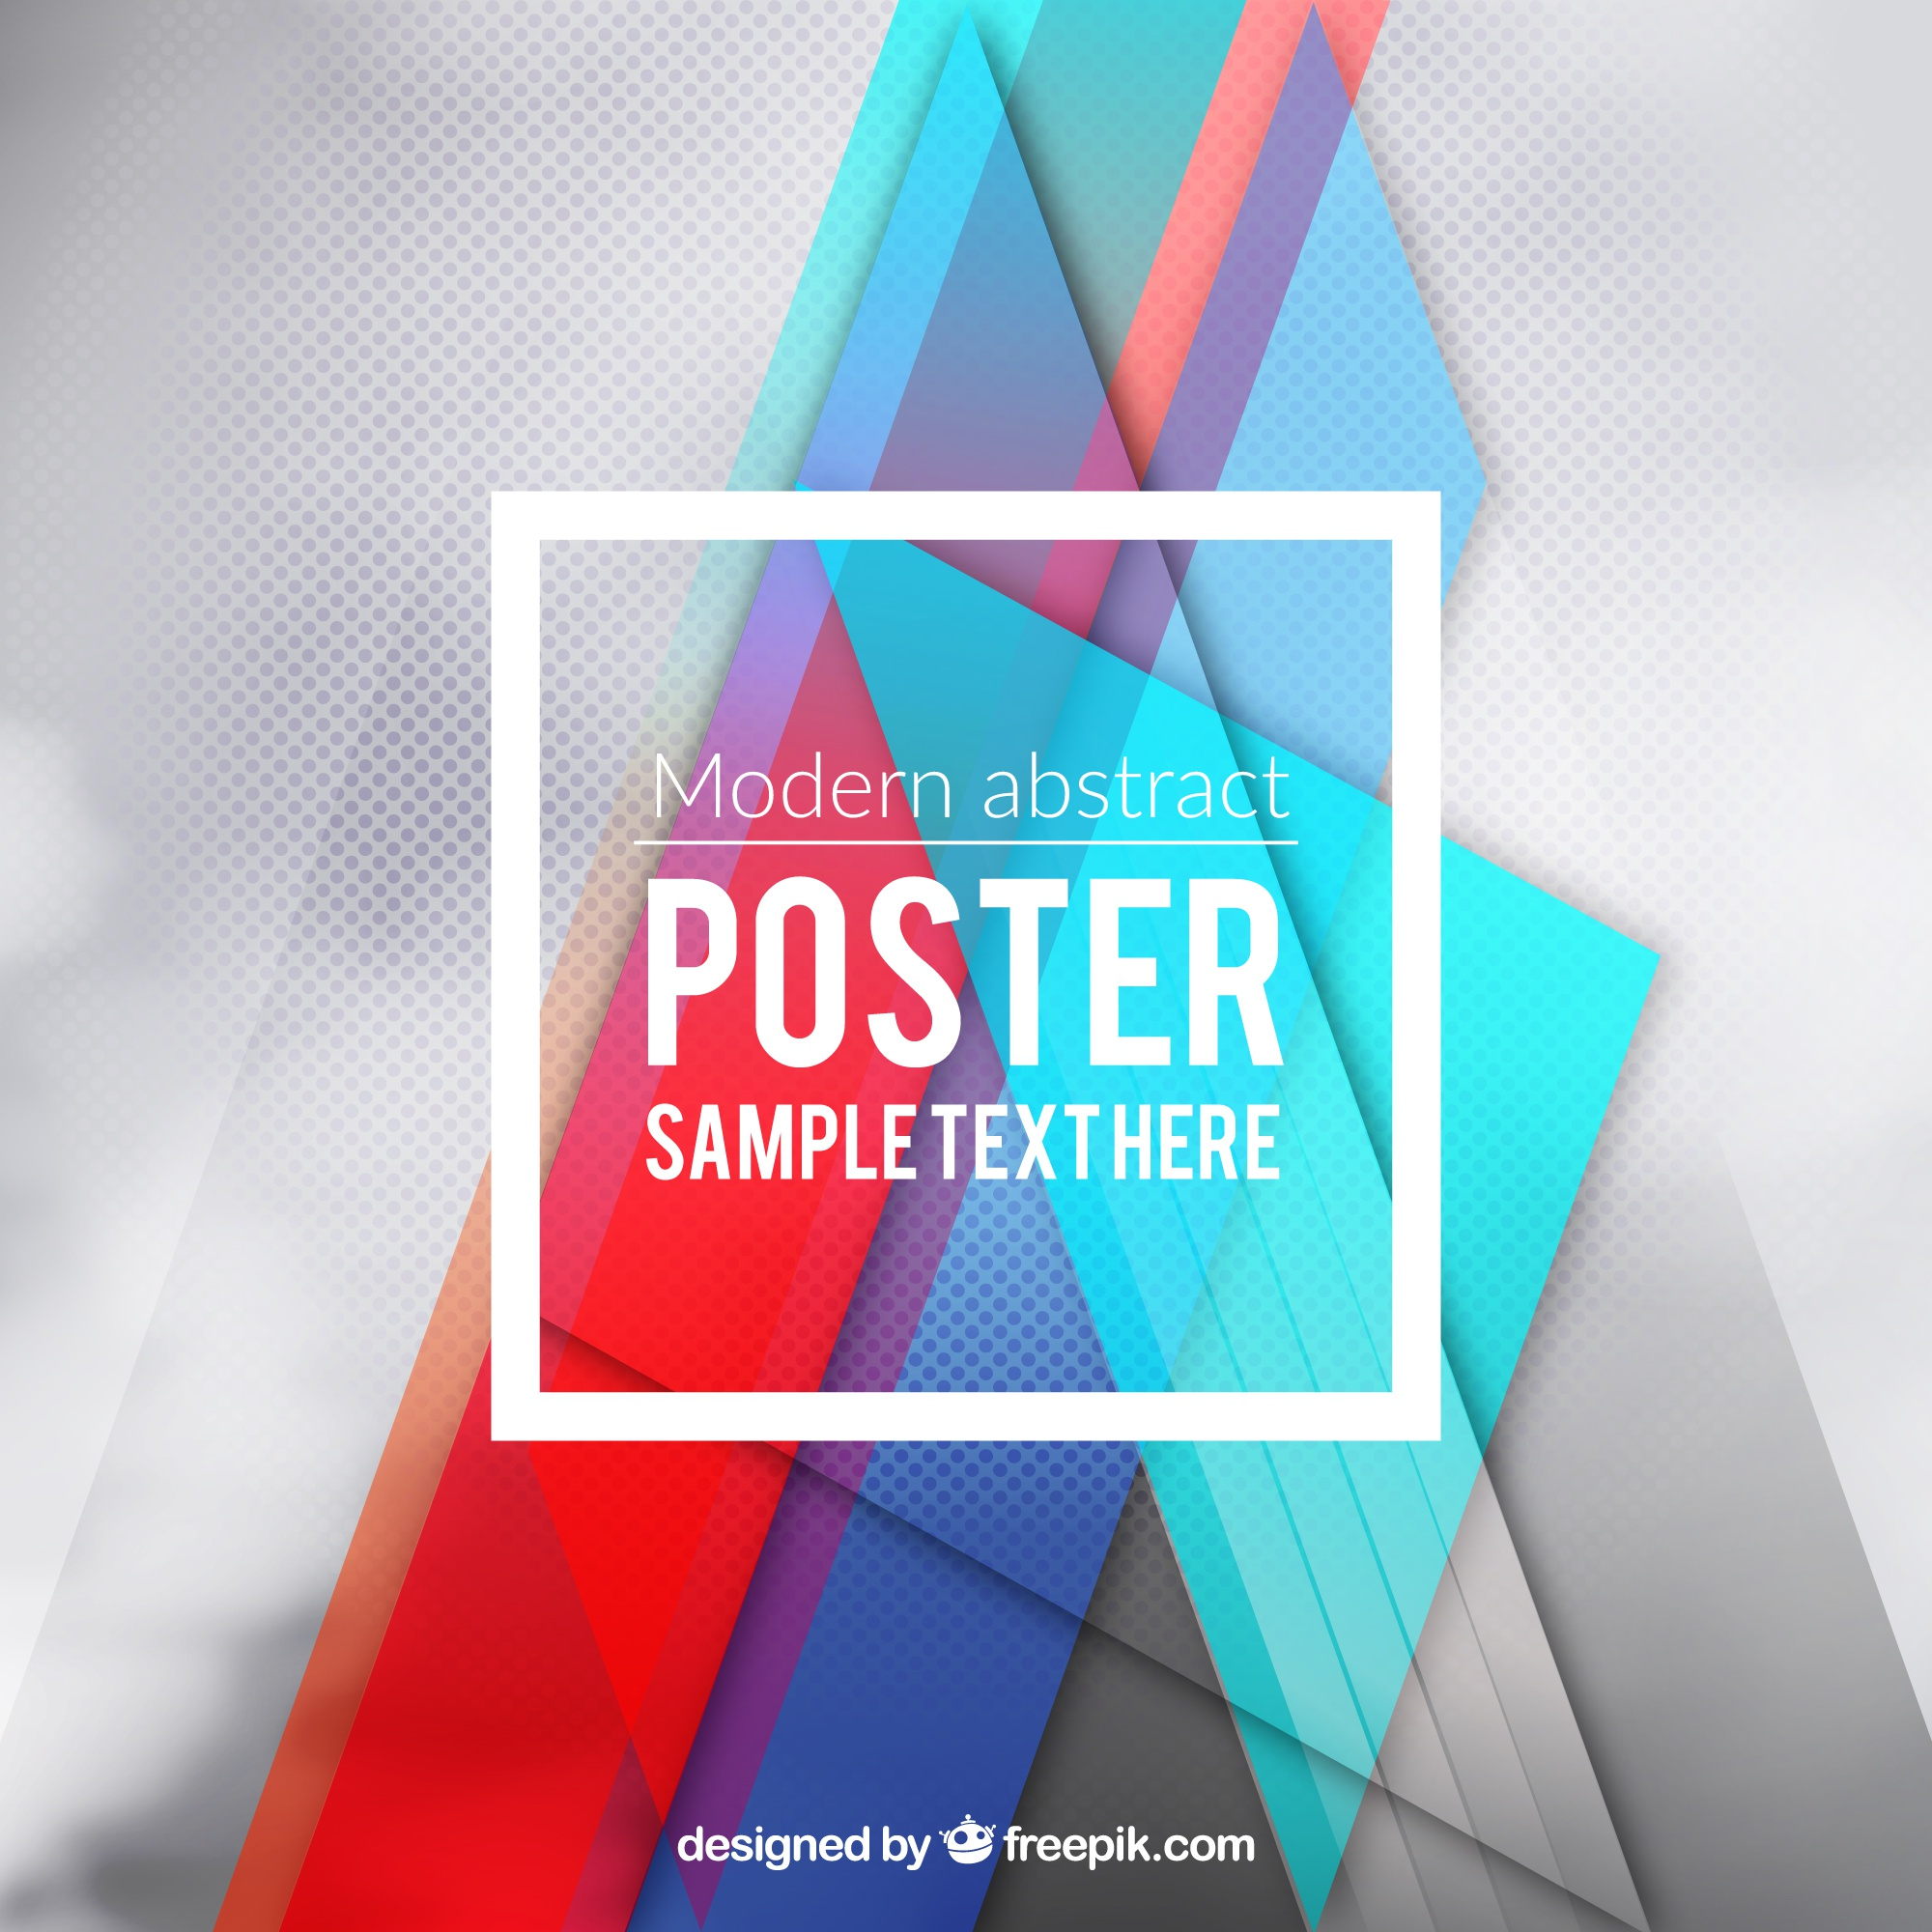 Modern poster in abstract style